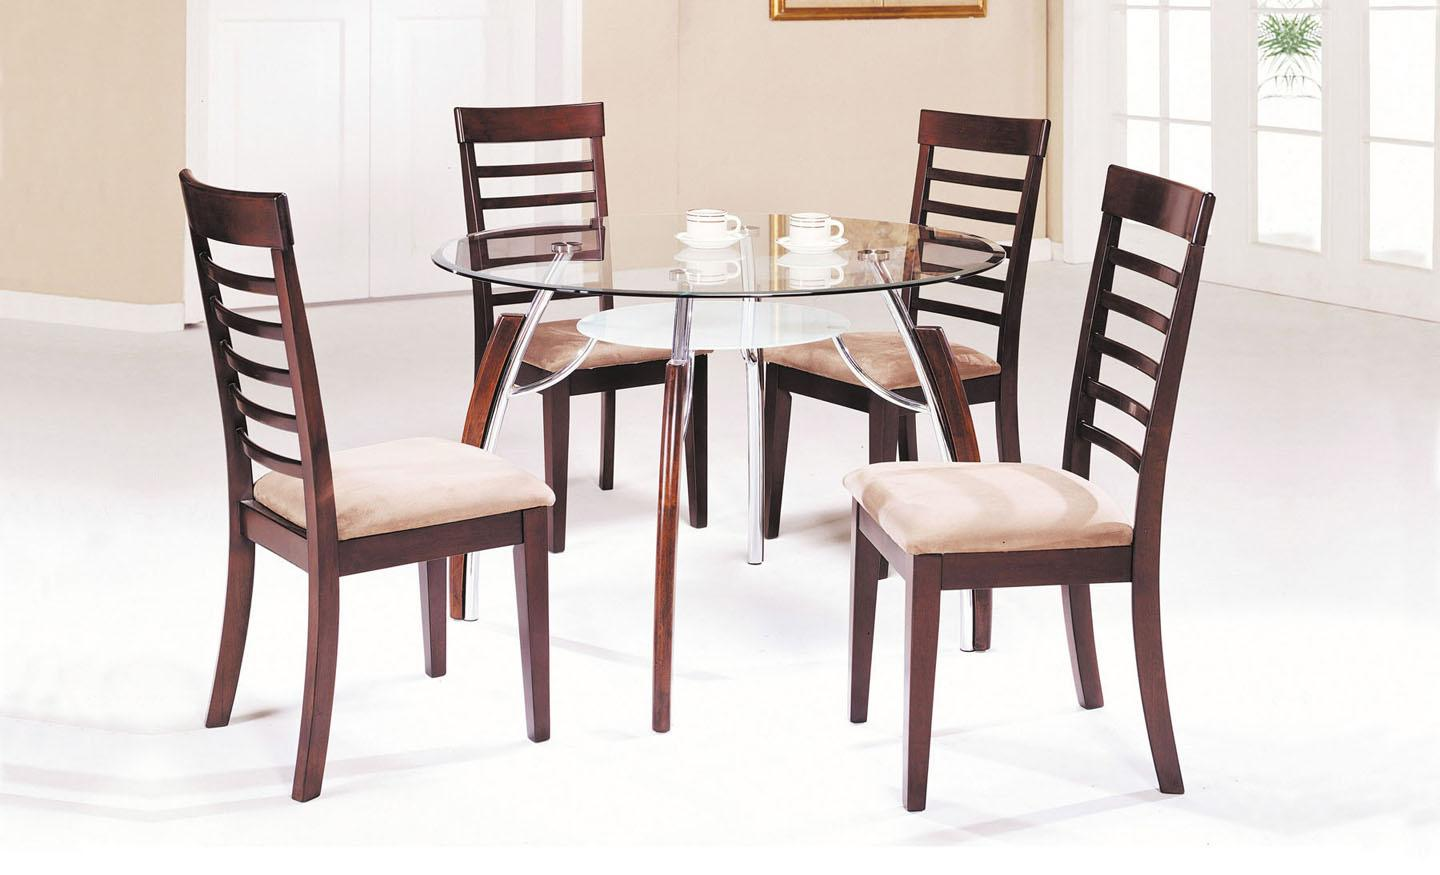 Acme Furniture Martini 5-Piece Dining Table and Chair Set - Item Number: 08185+08187